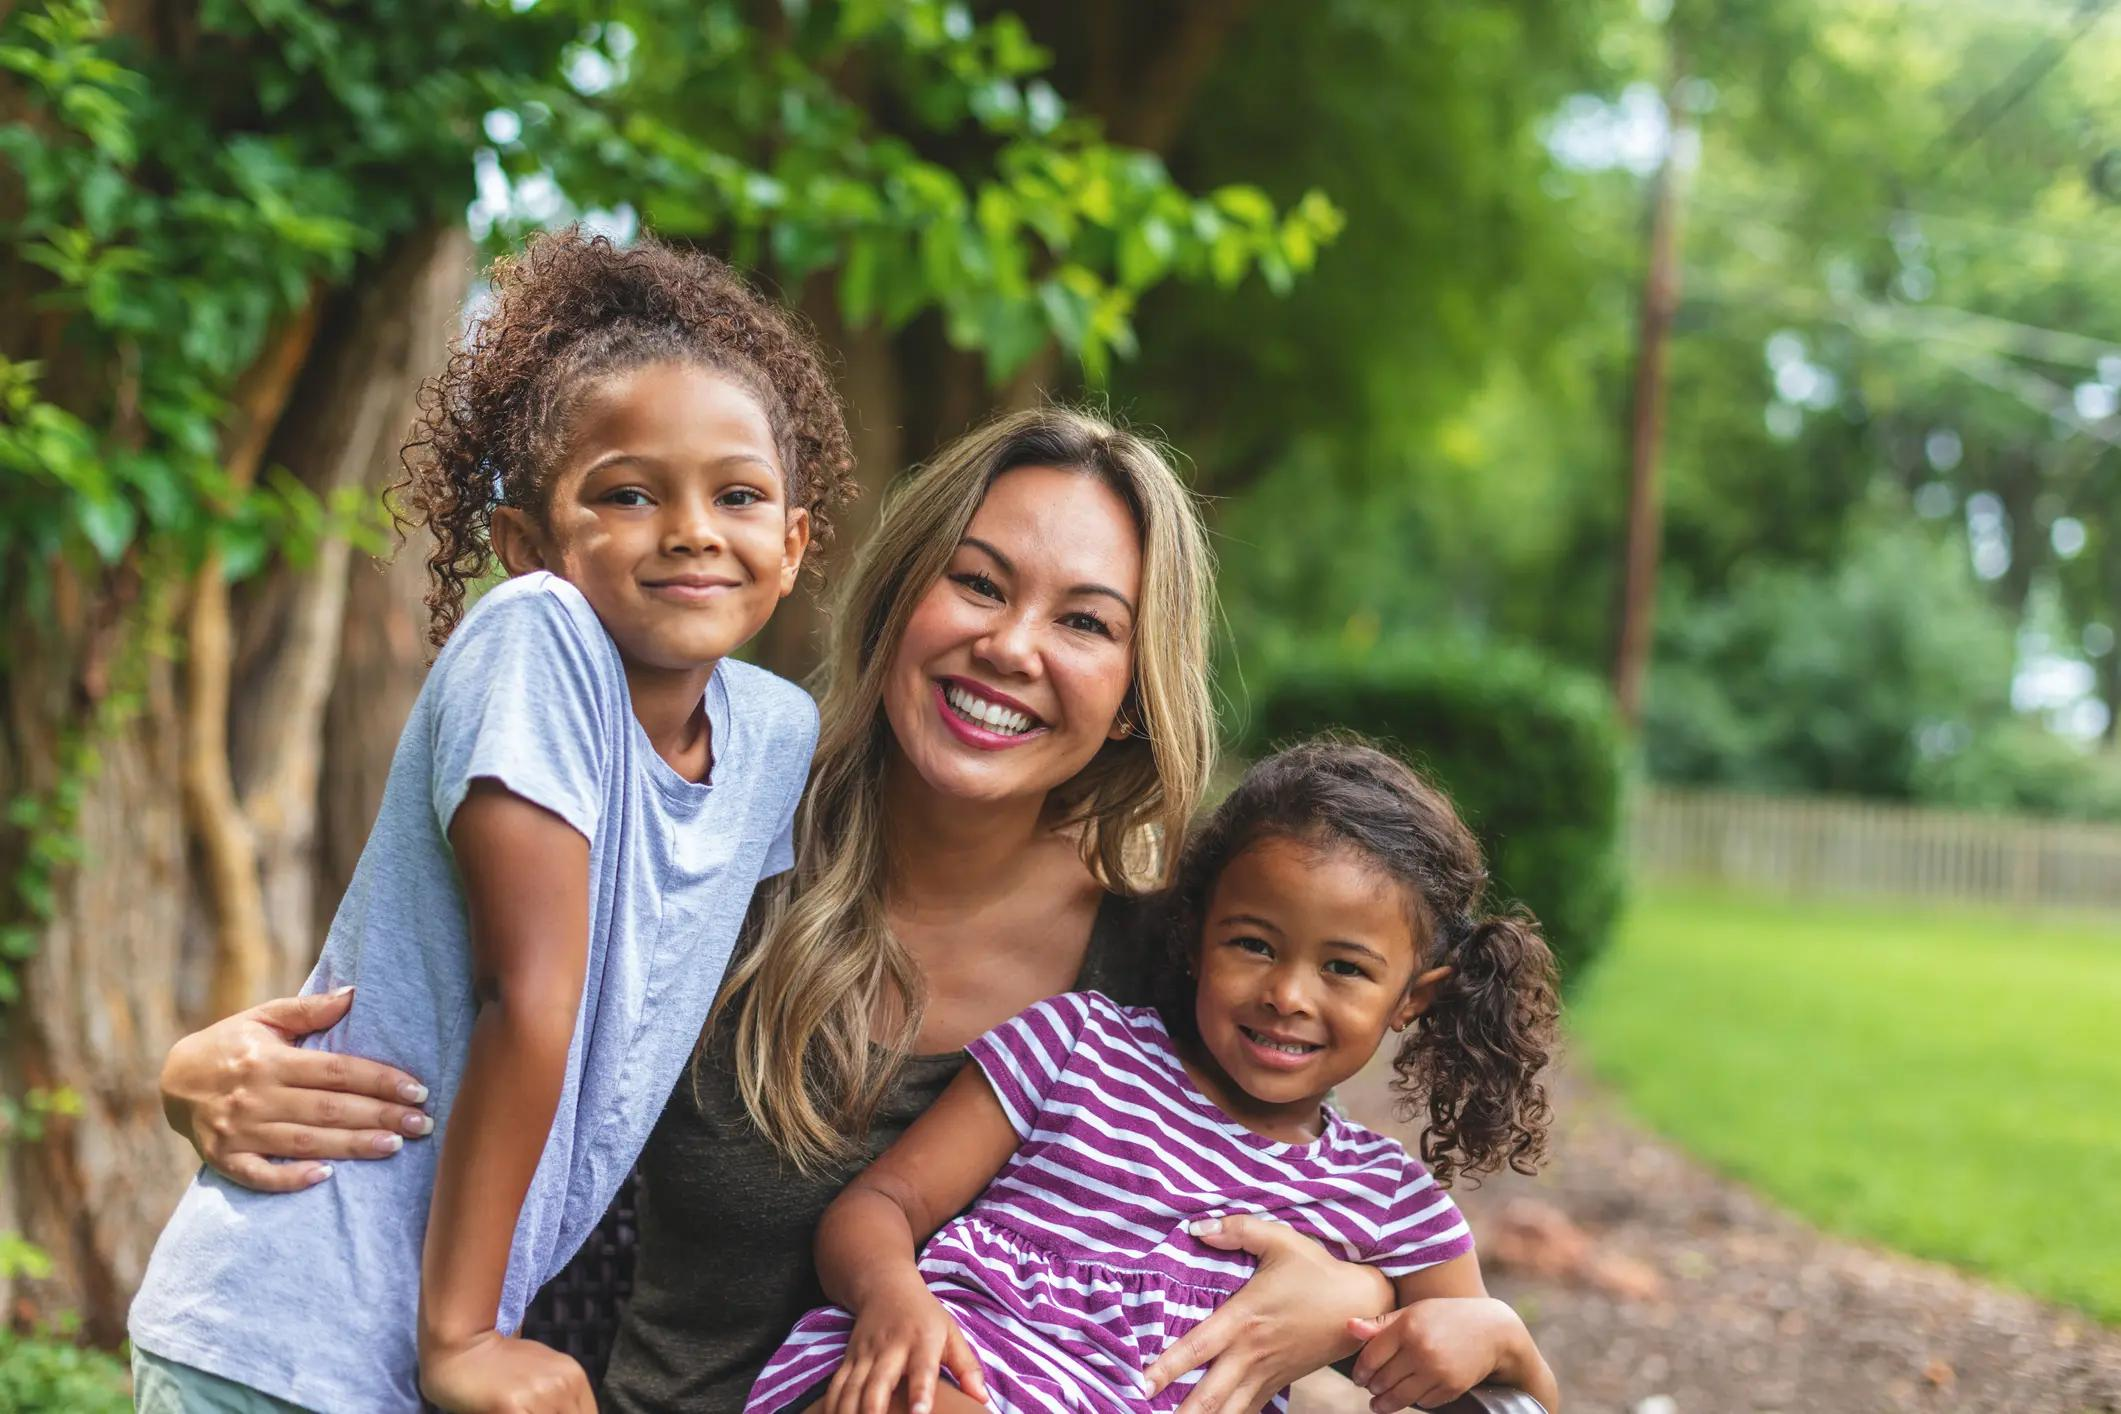 United Way's Pathways to Prosperity Campaign Helps Struggling Families